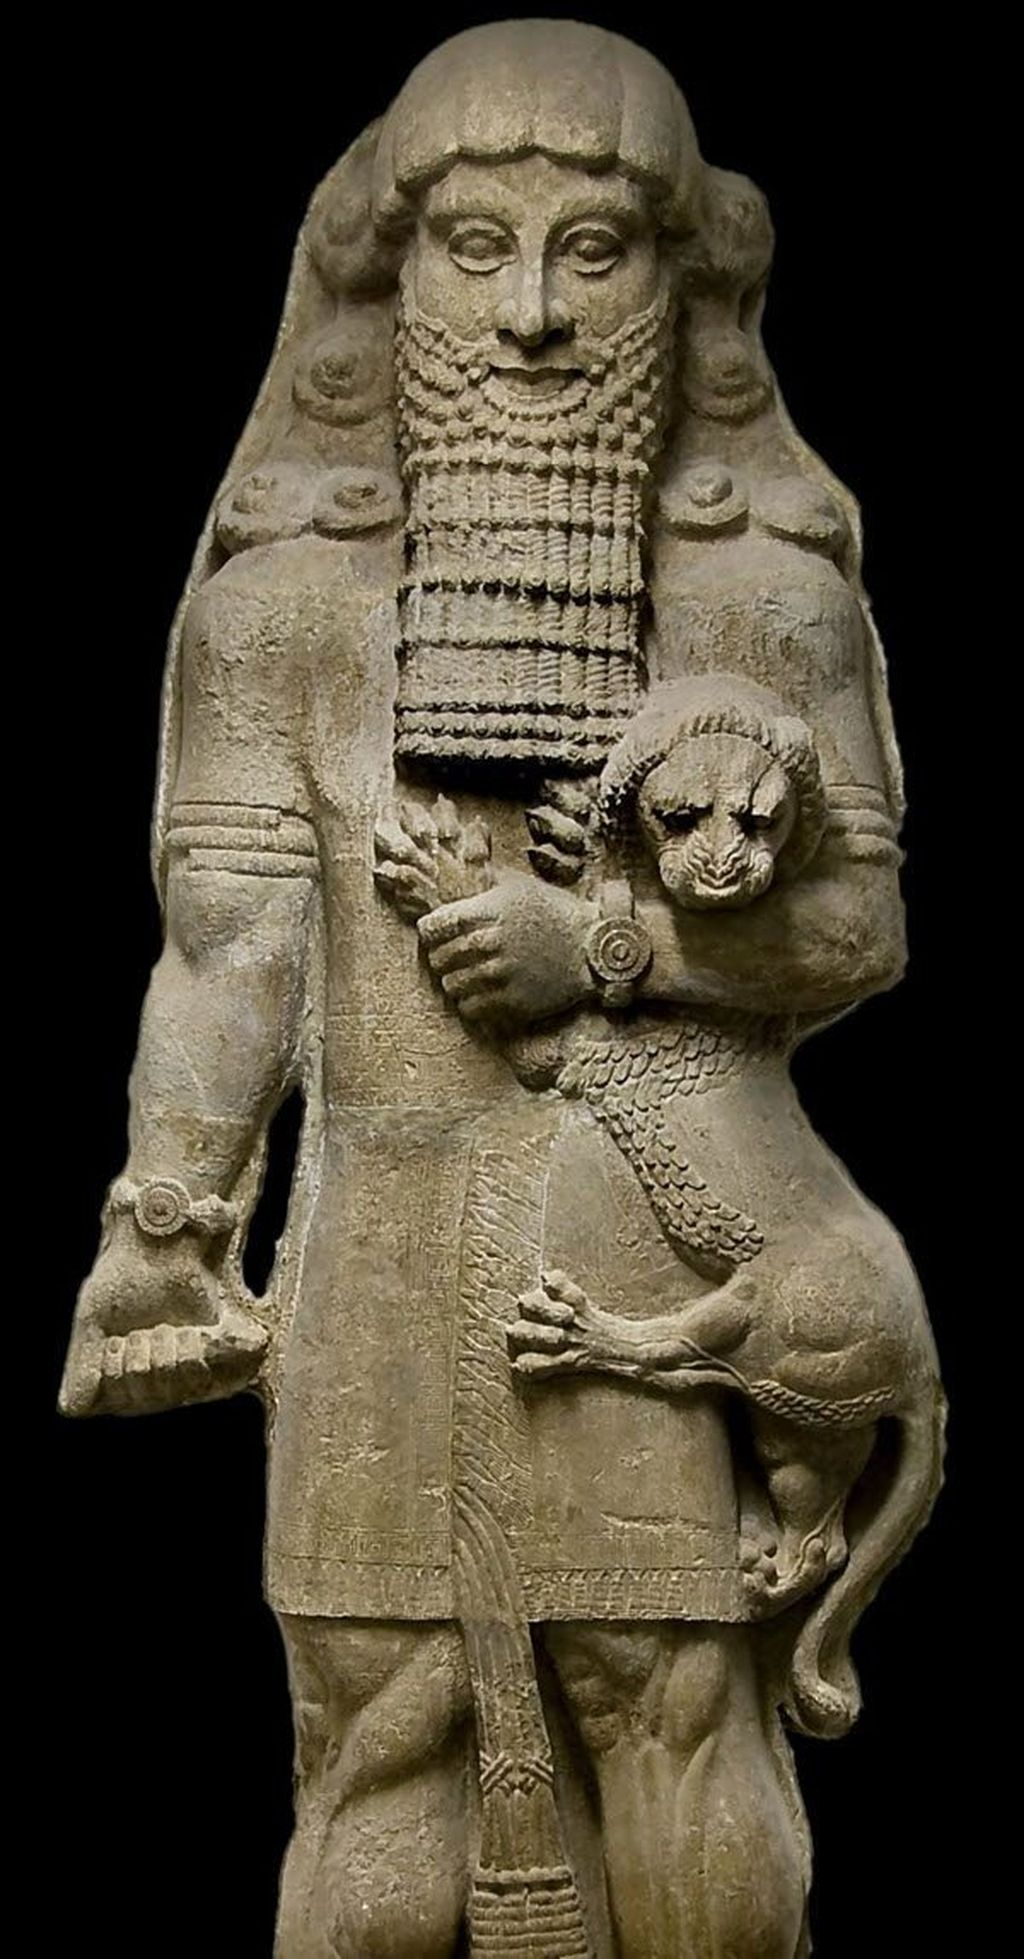 an analysis of the ancient epic of gilgamesh The epic of gilgamesh is a series of stories about king gilgamesh, written thousands of years ago the stories recount the many adventures that our hero, gilgamesh, experienced in his search for everlasting life.